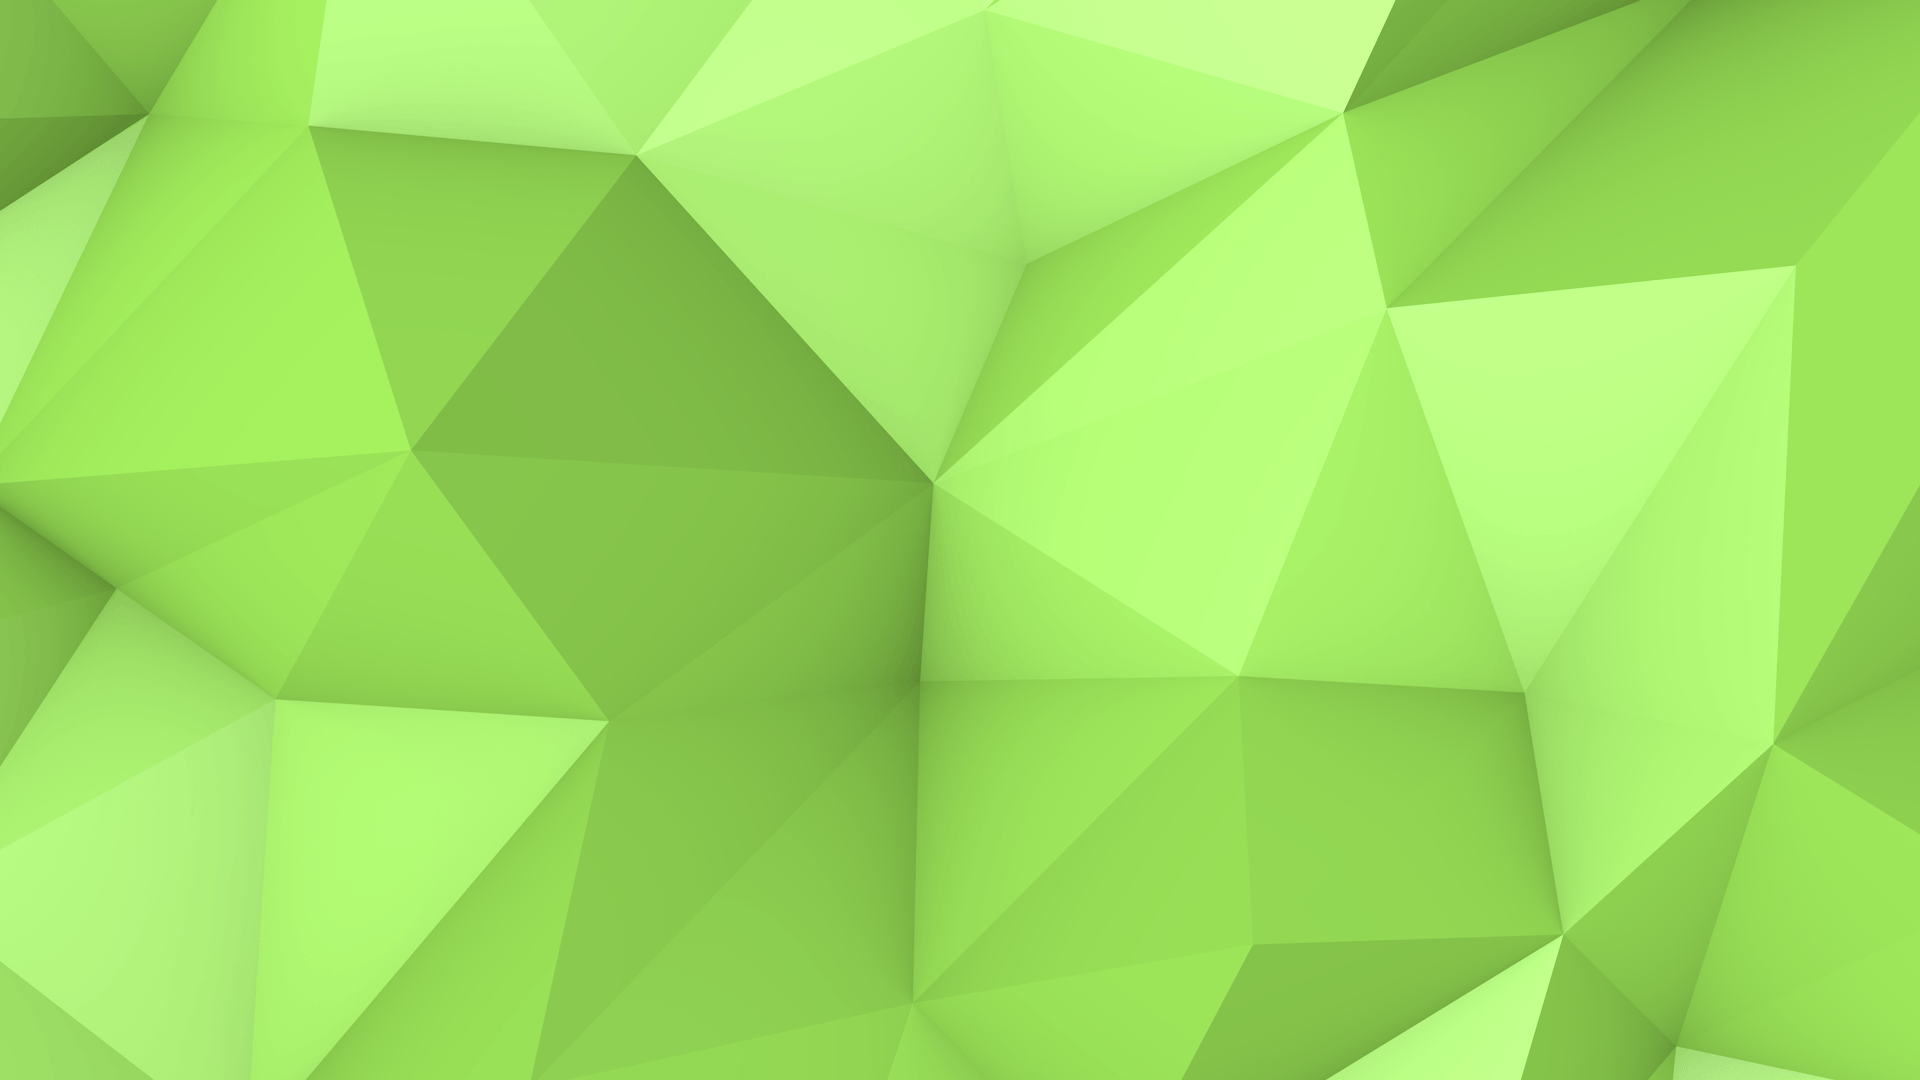 polygon-wallpaper-19.jpg